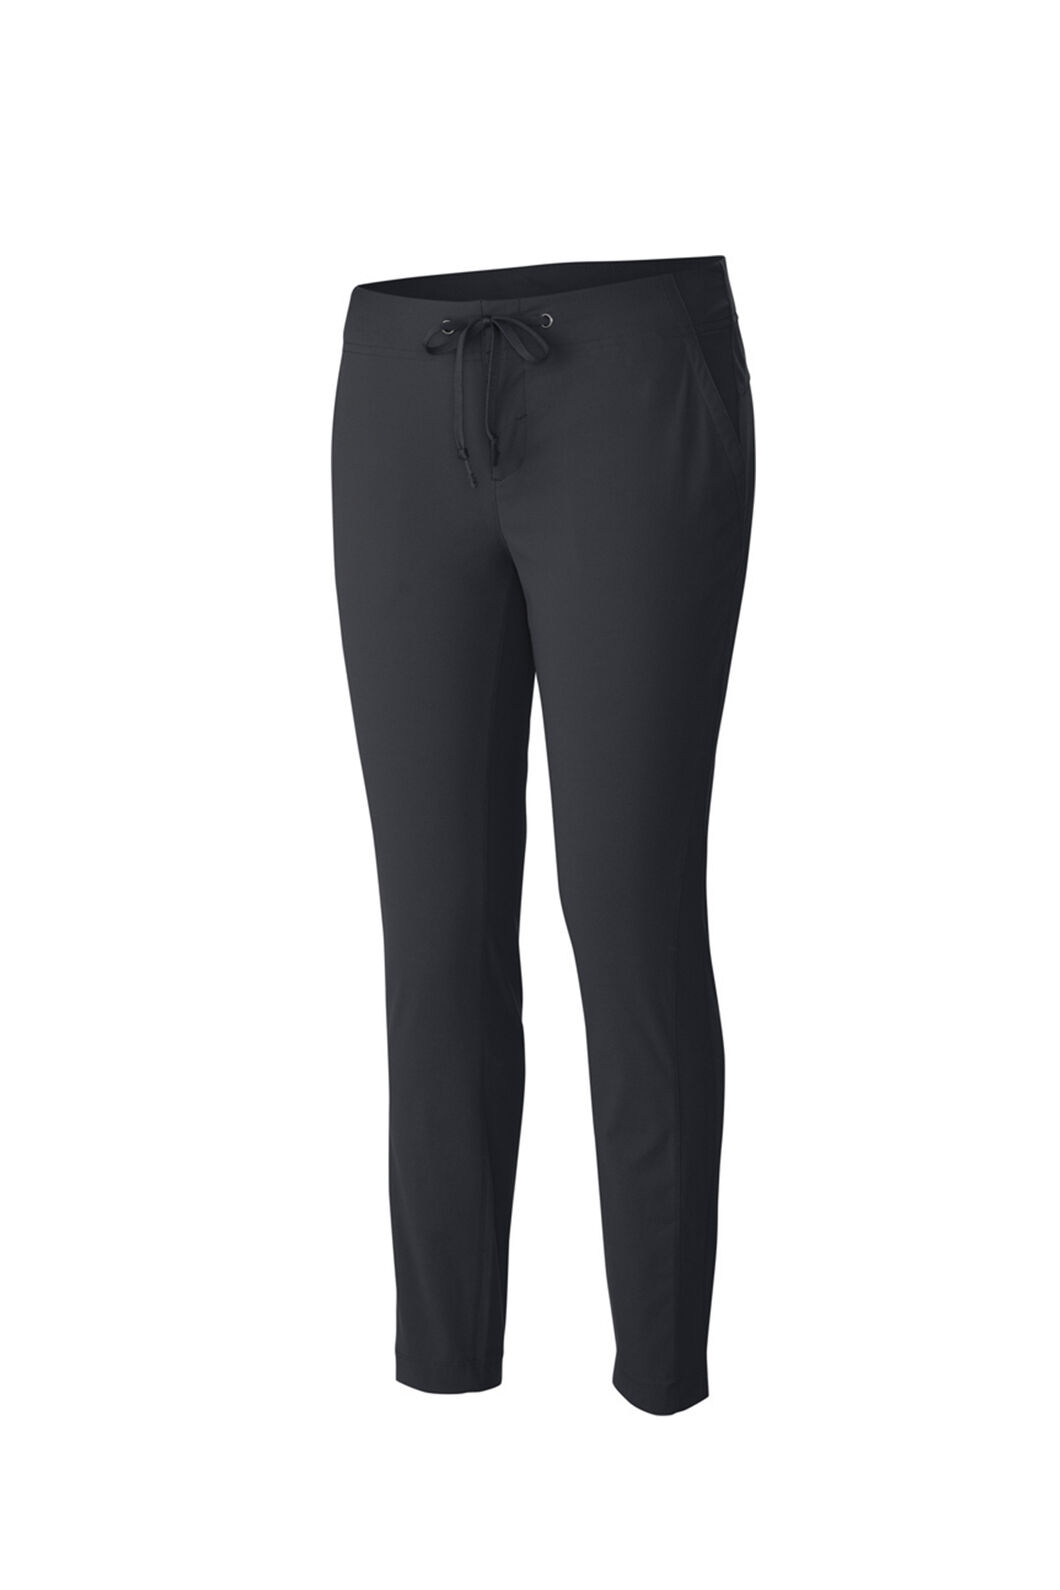 Columbia Women's Anytime Outdoor Ankle Pant, Black, hi-res